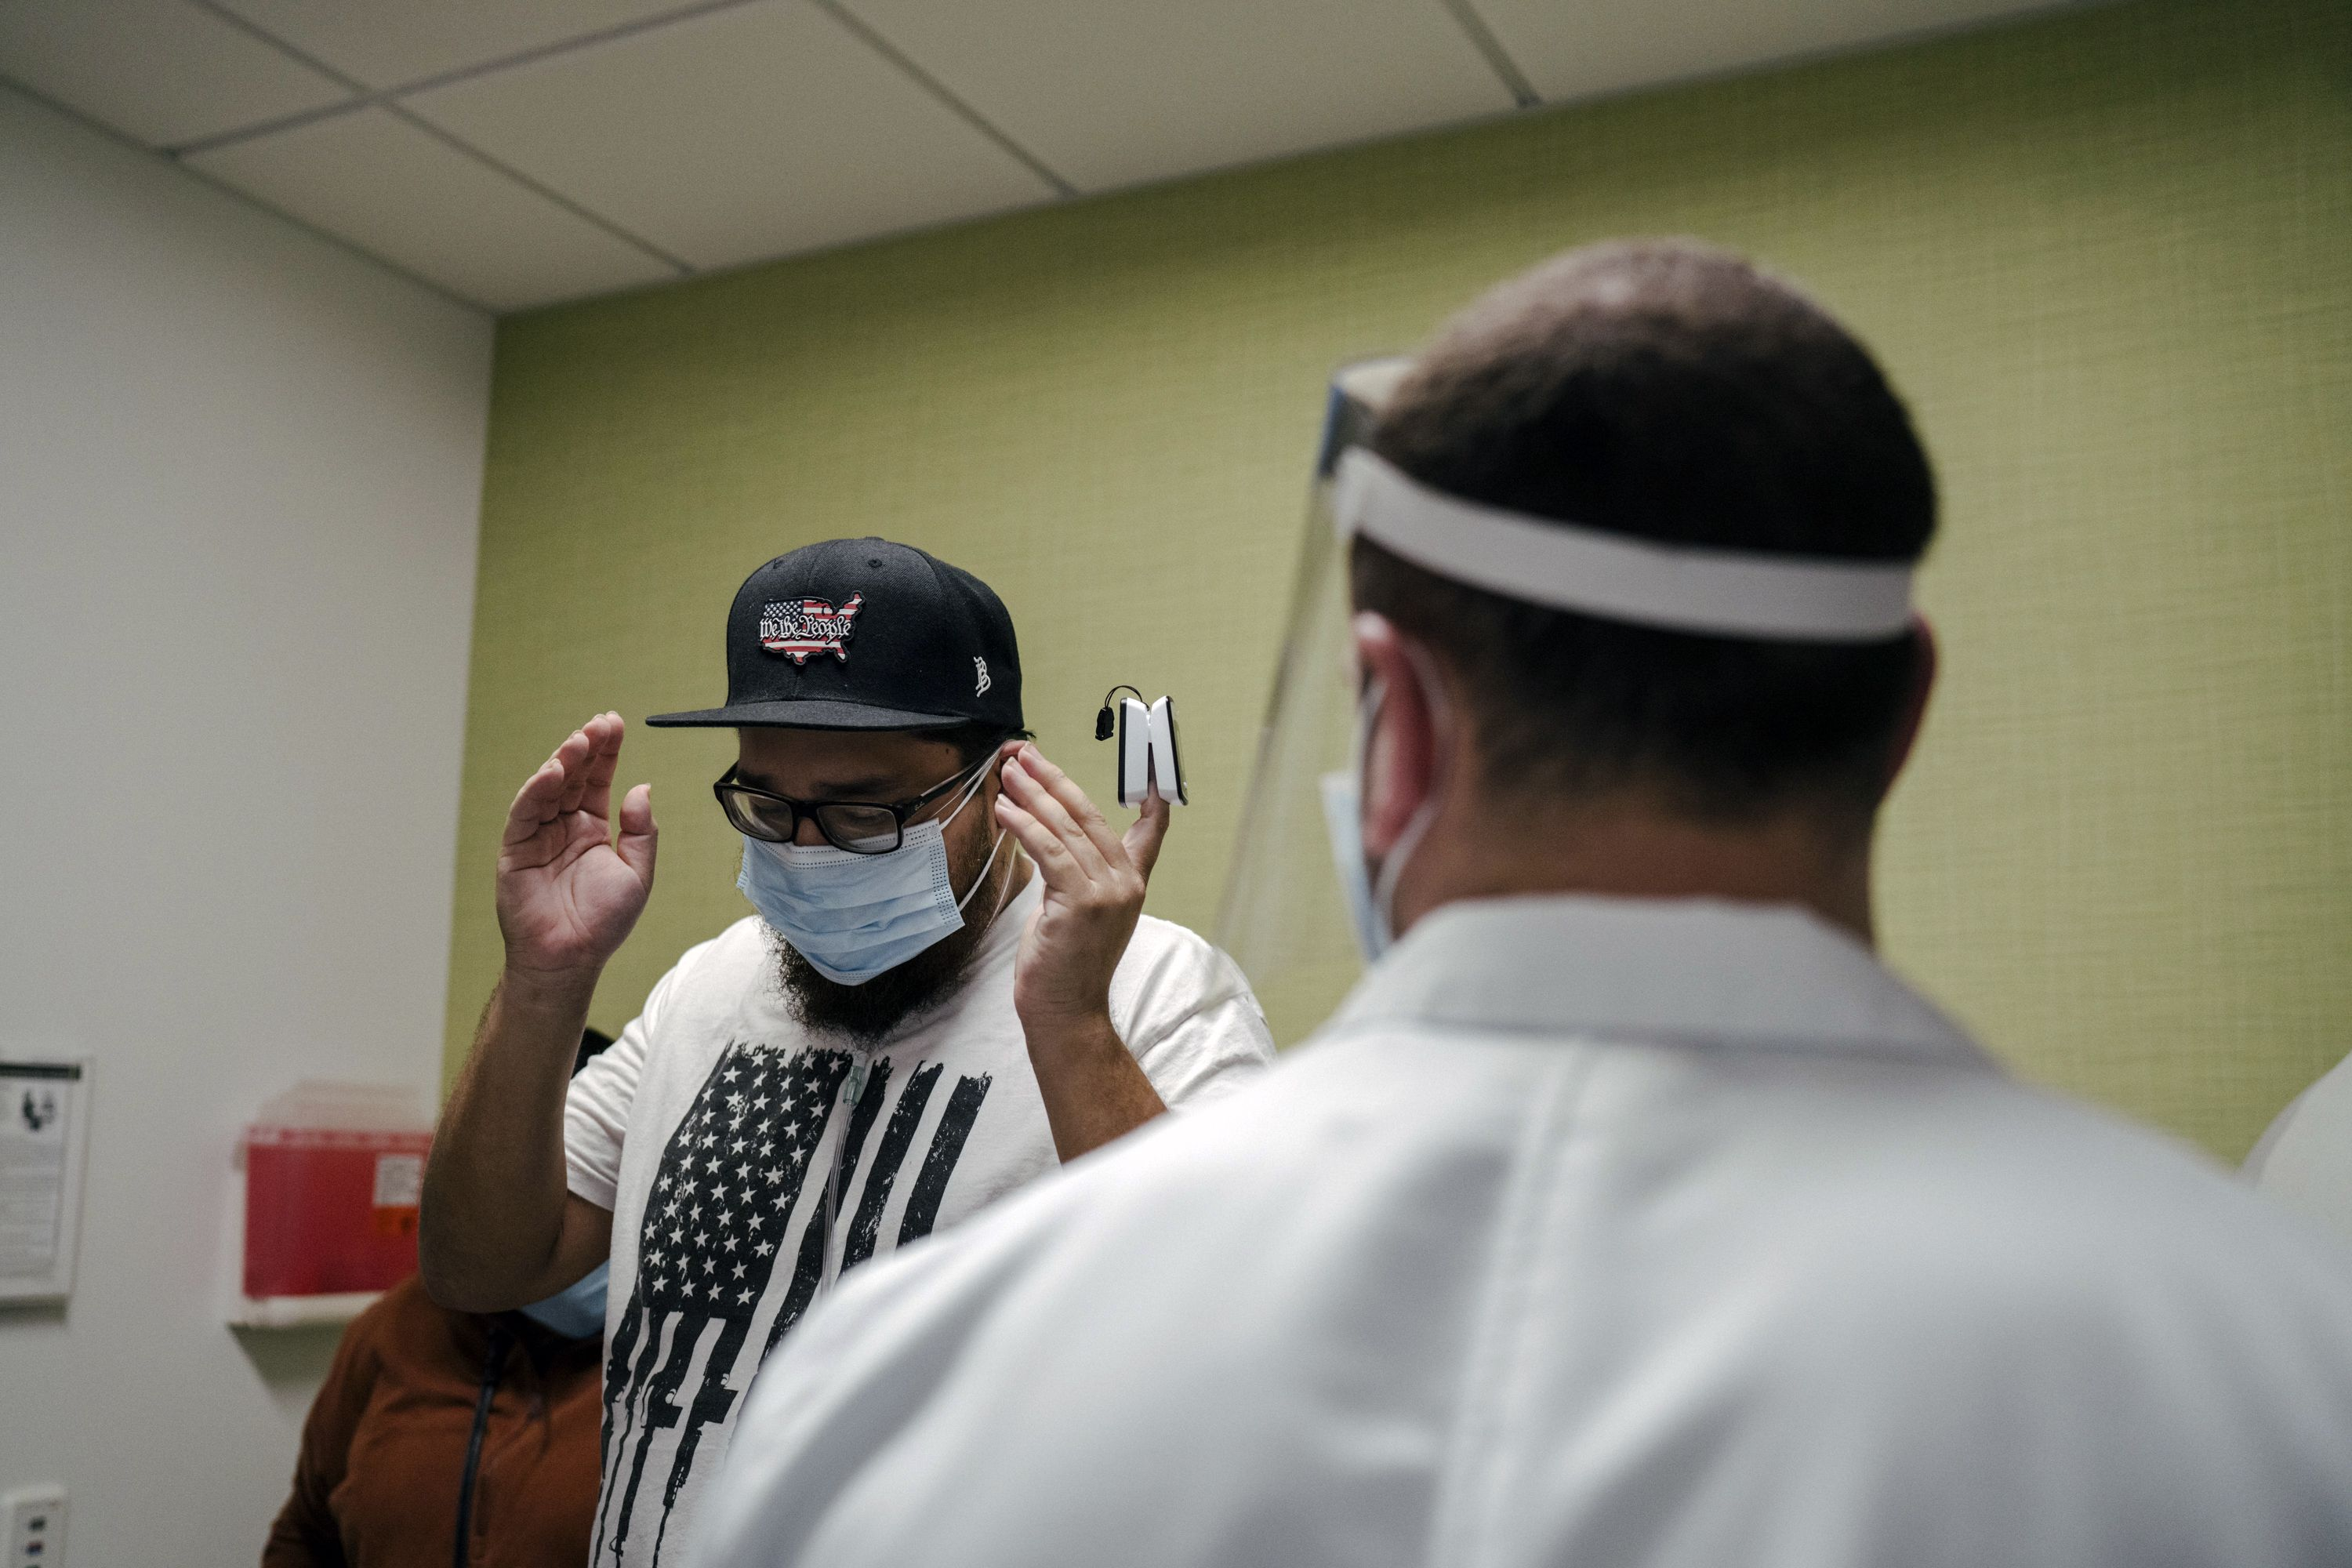 Gilbert Torres, left, returns to Martin Luther King Jr. Community Hospital in Los Angeles, where he had been on a ventilator in the intensive care unit, on Feb. 9, 2021. The hospital has created a new outpatient clinic for COVID-19 survivors, intended to address their lingering physical and psychic wounds — and to help keep them from needing to be readmitted. (Isadora Kosofsky/The New York Times)